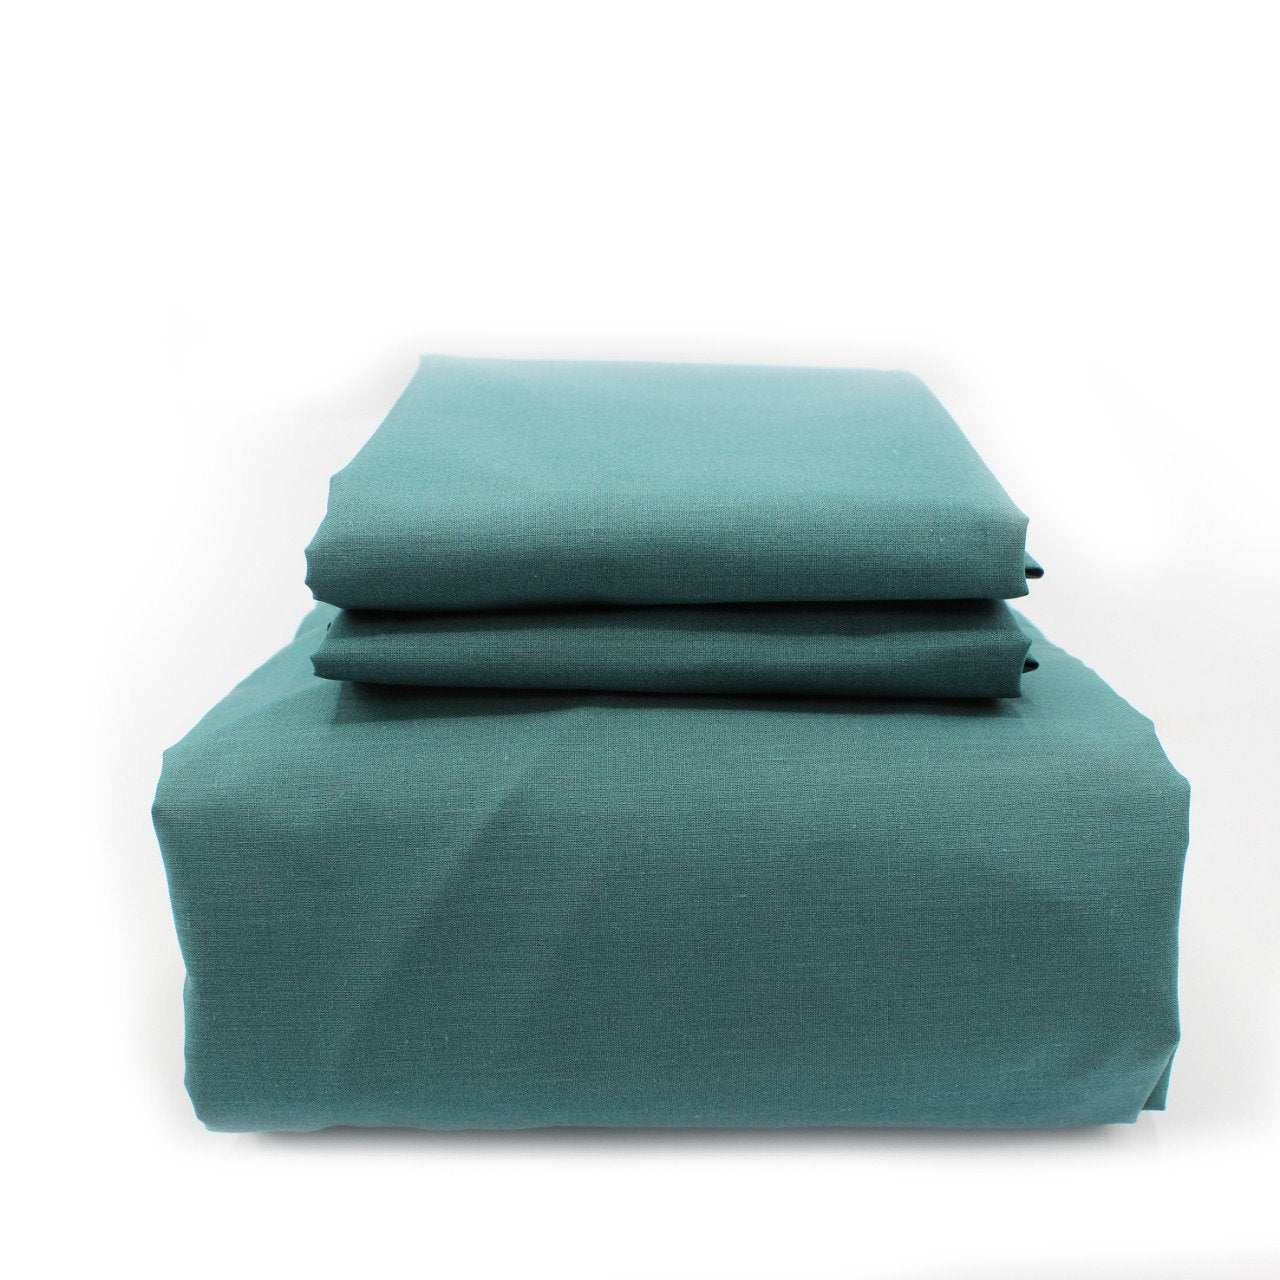 Fitted Sheet withPillow Covers - Teal - waseeh.com